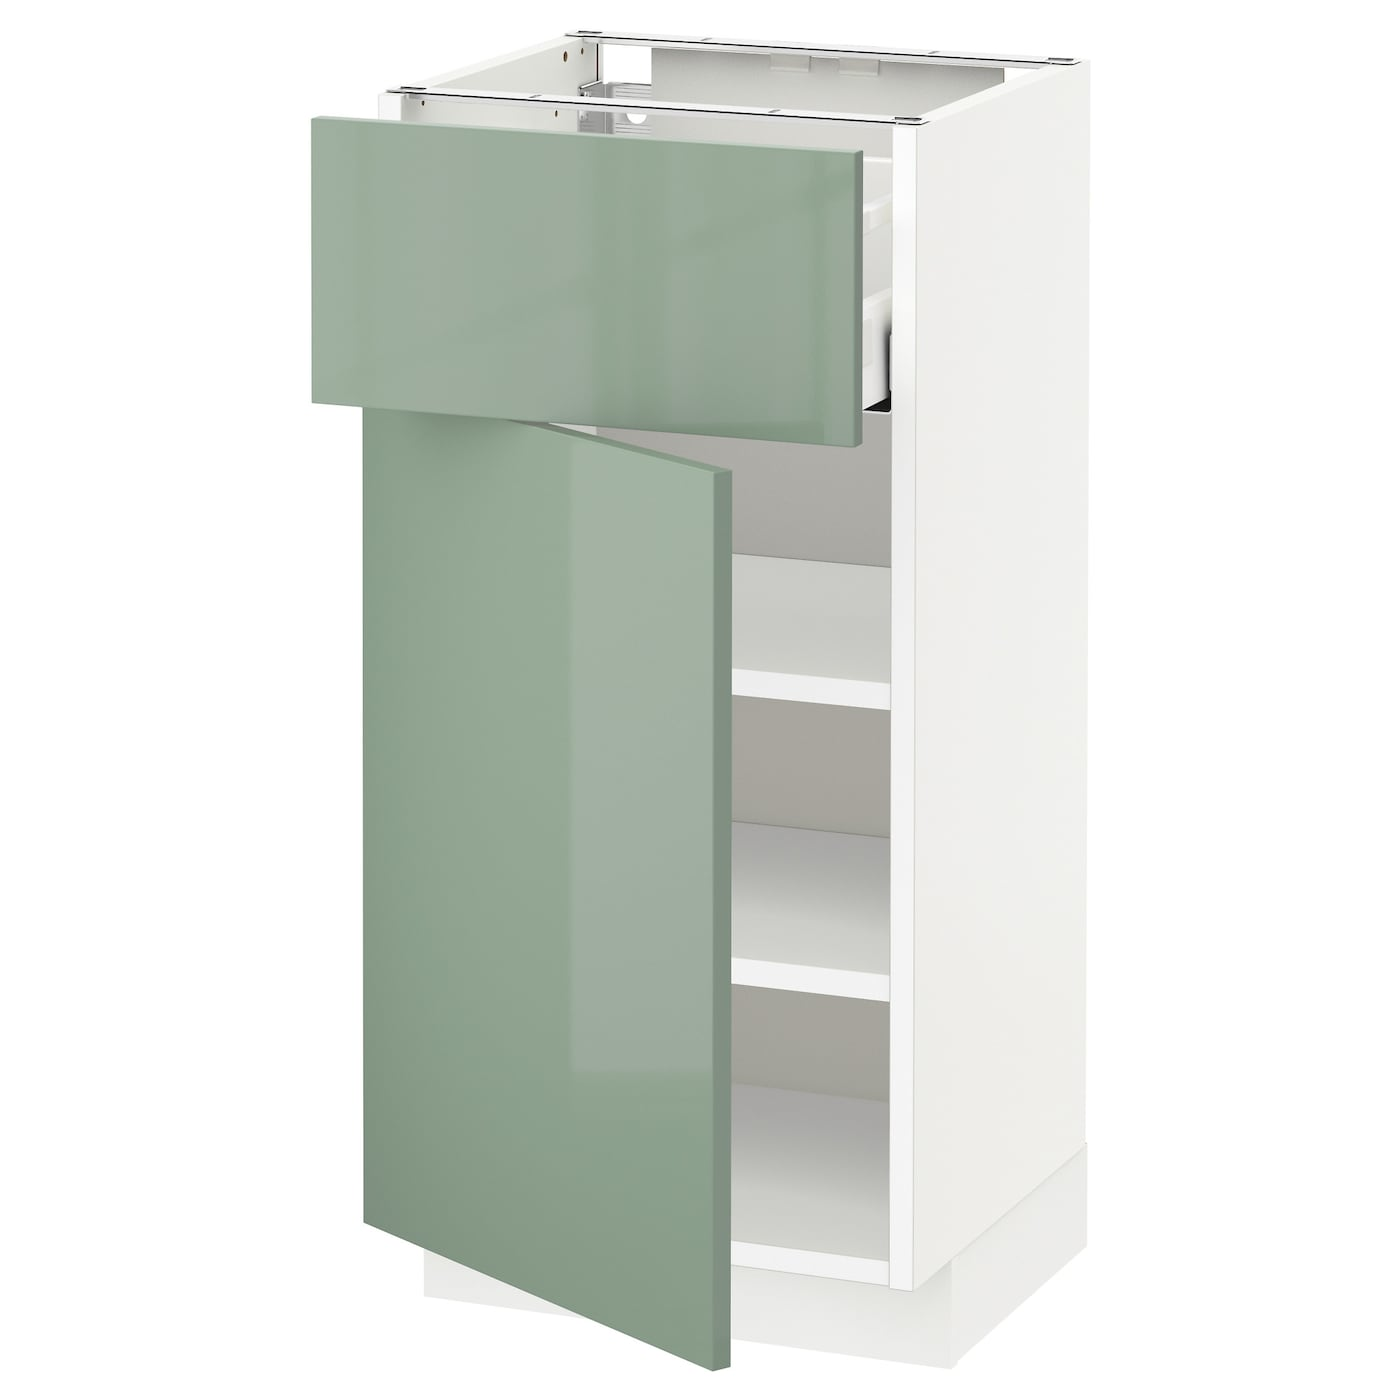 metod maximera base cabinet with drawer door white kallarp light green 40 x 37 cm ikea. Black Bedroom Furniture Sets. Home Design Ideas